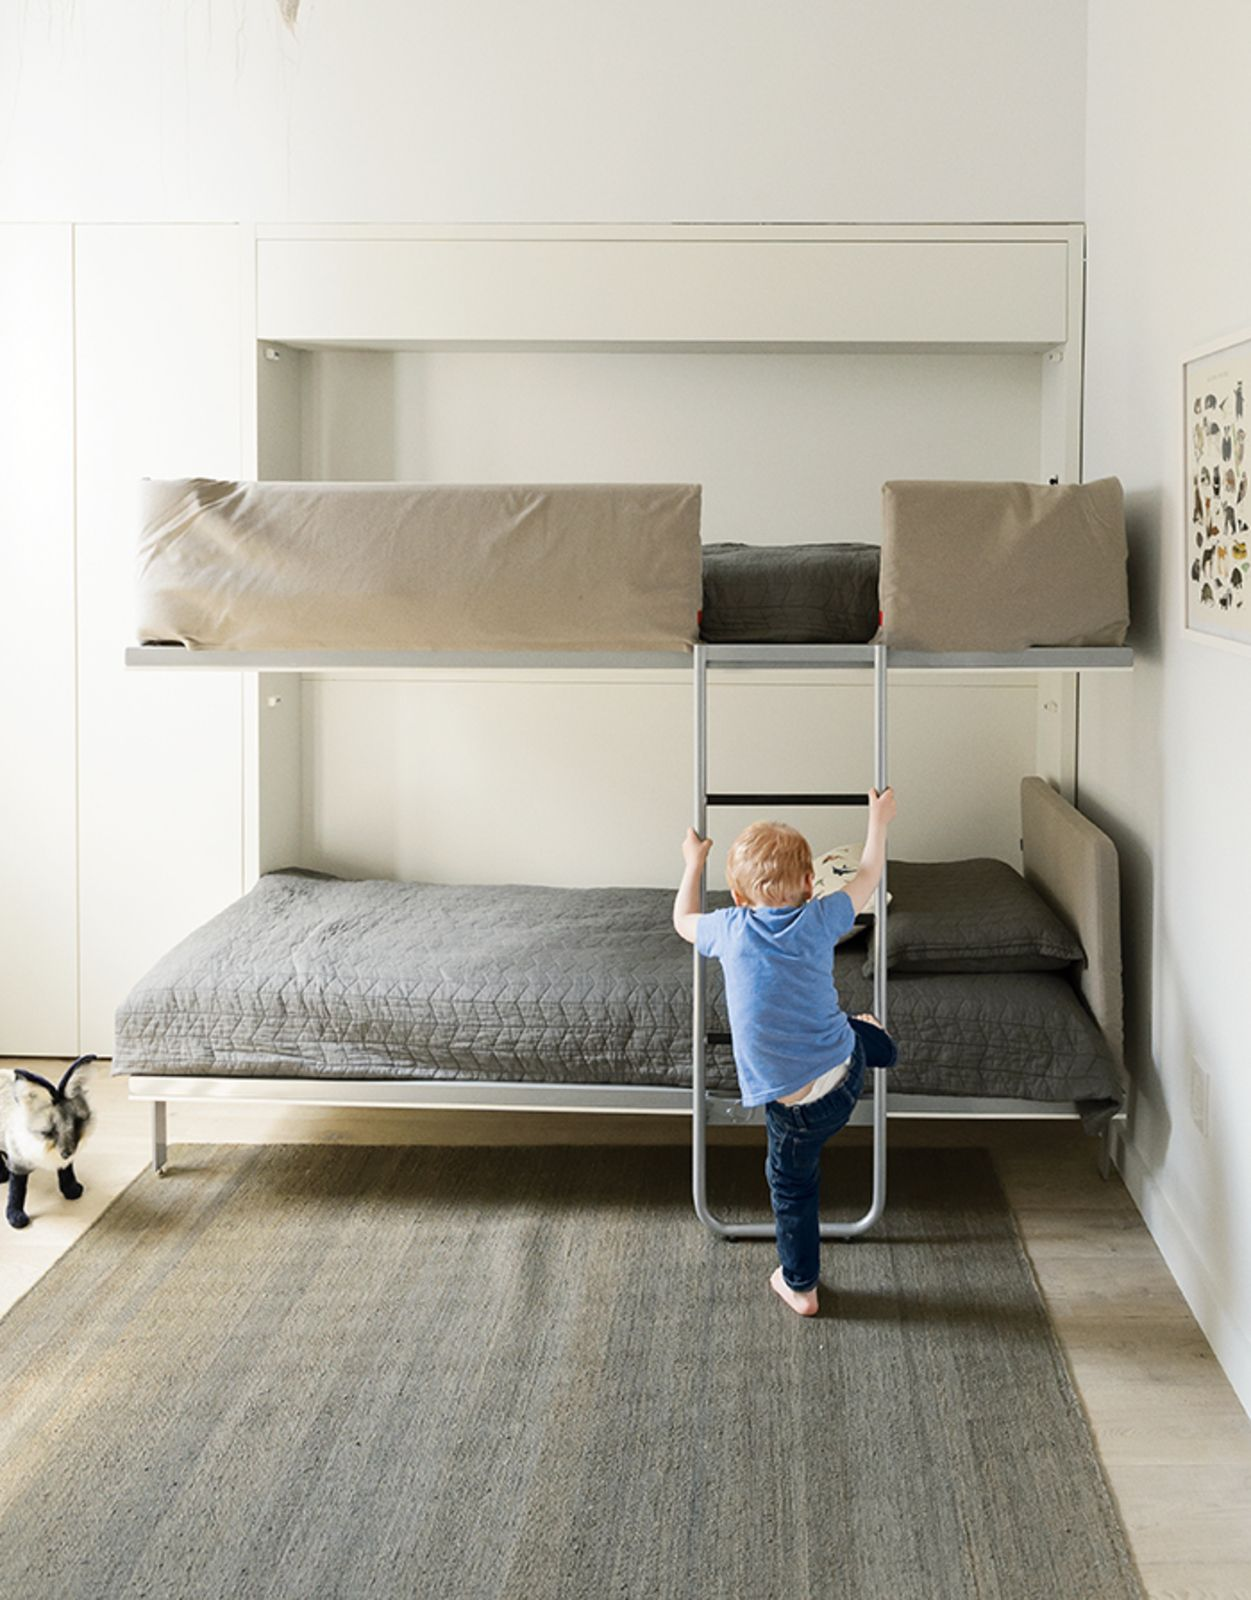 Space Saving Wall Beds That Made Their Way Into Stylish Decors